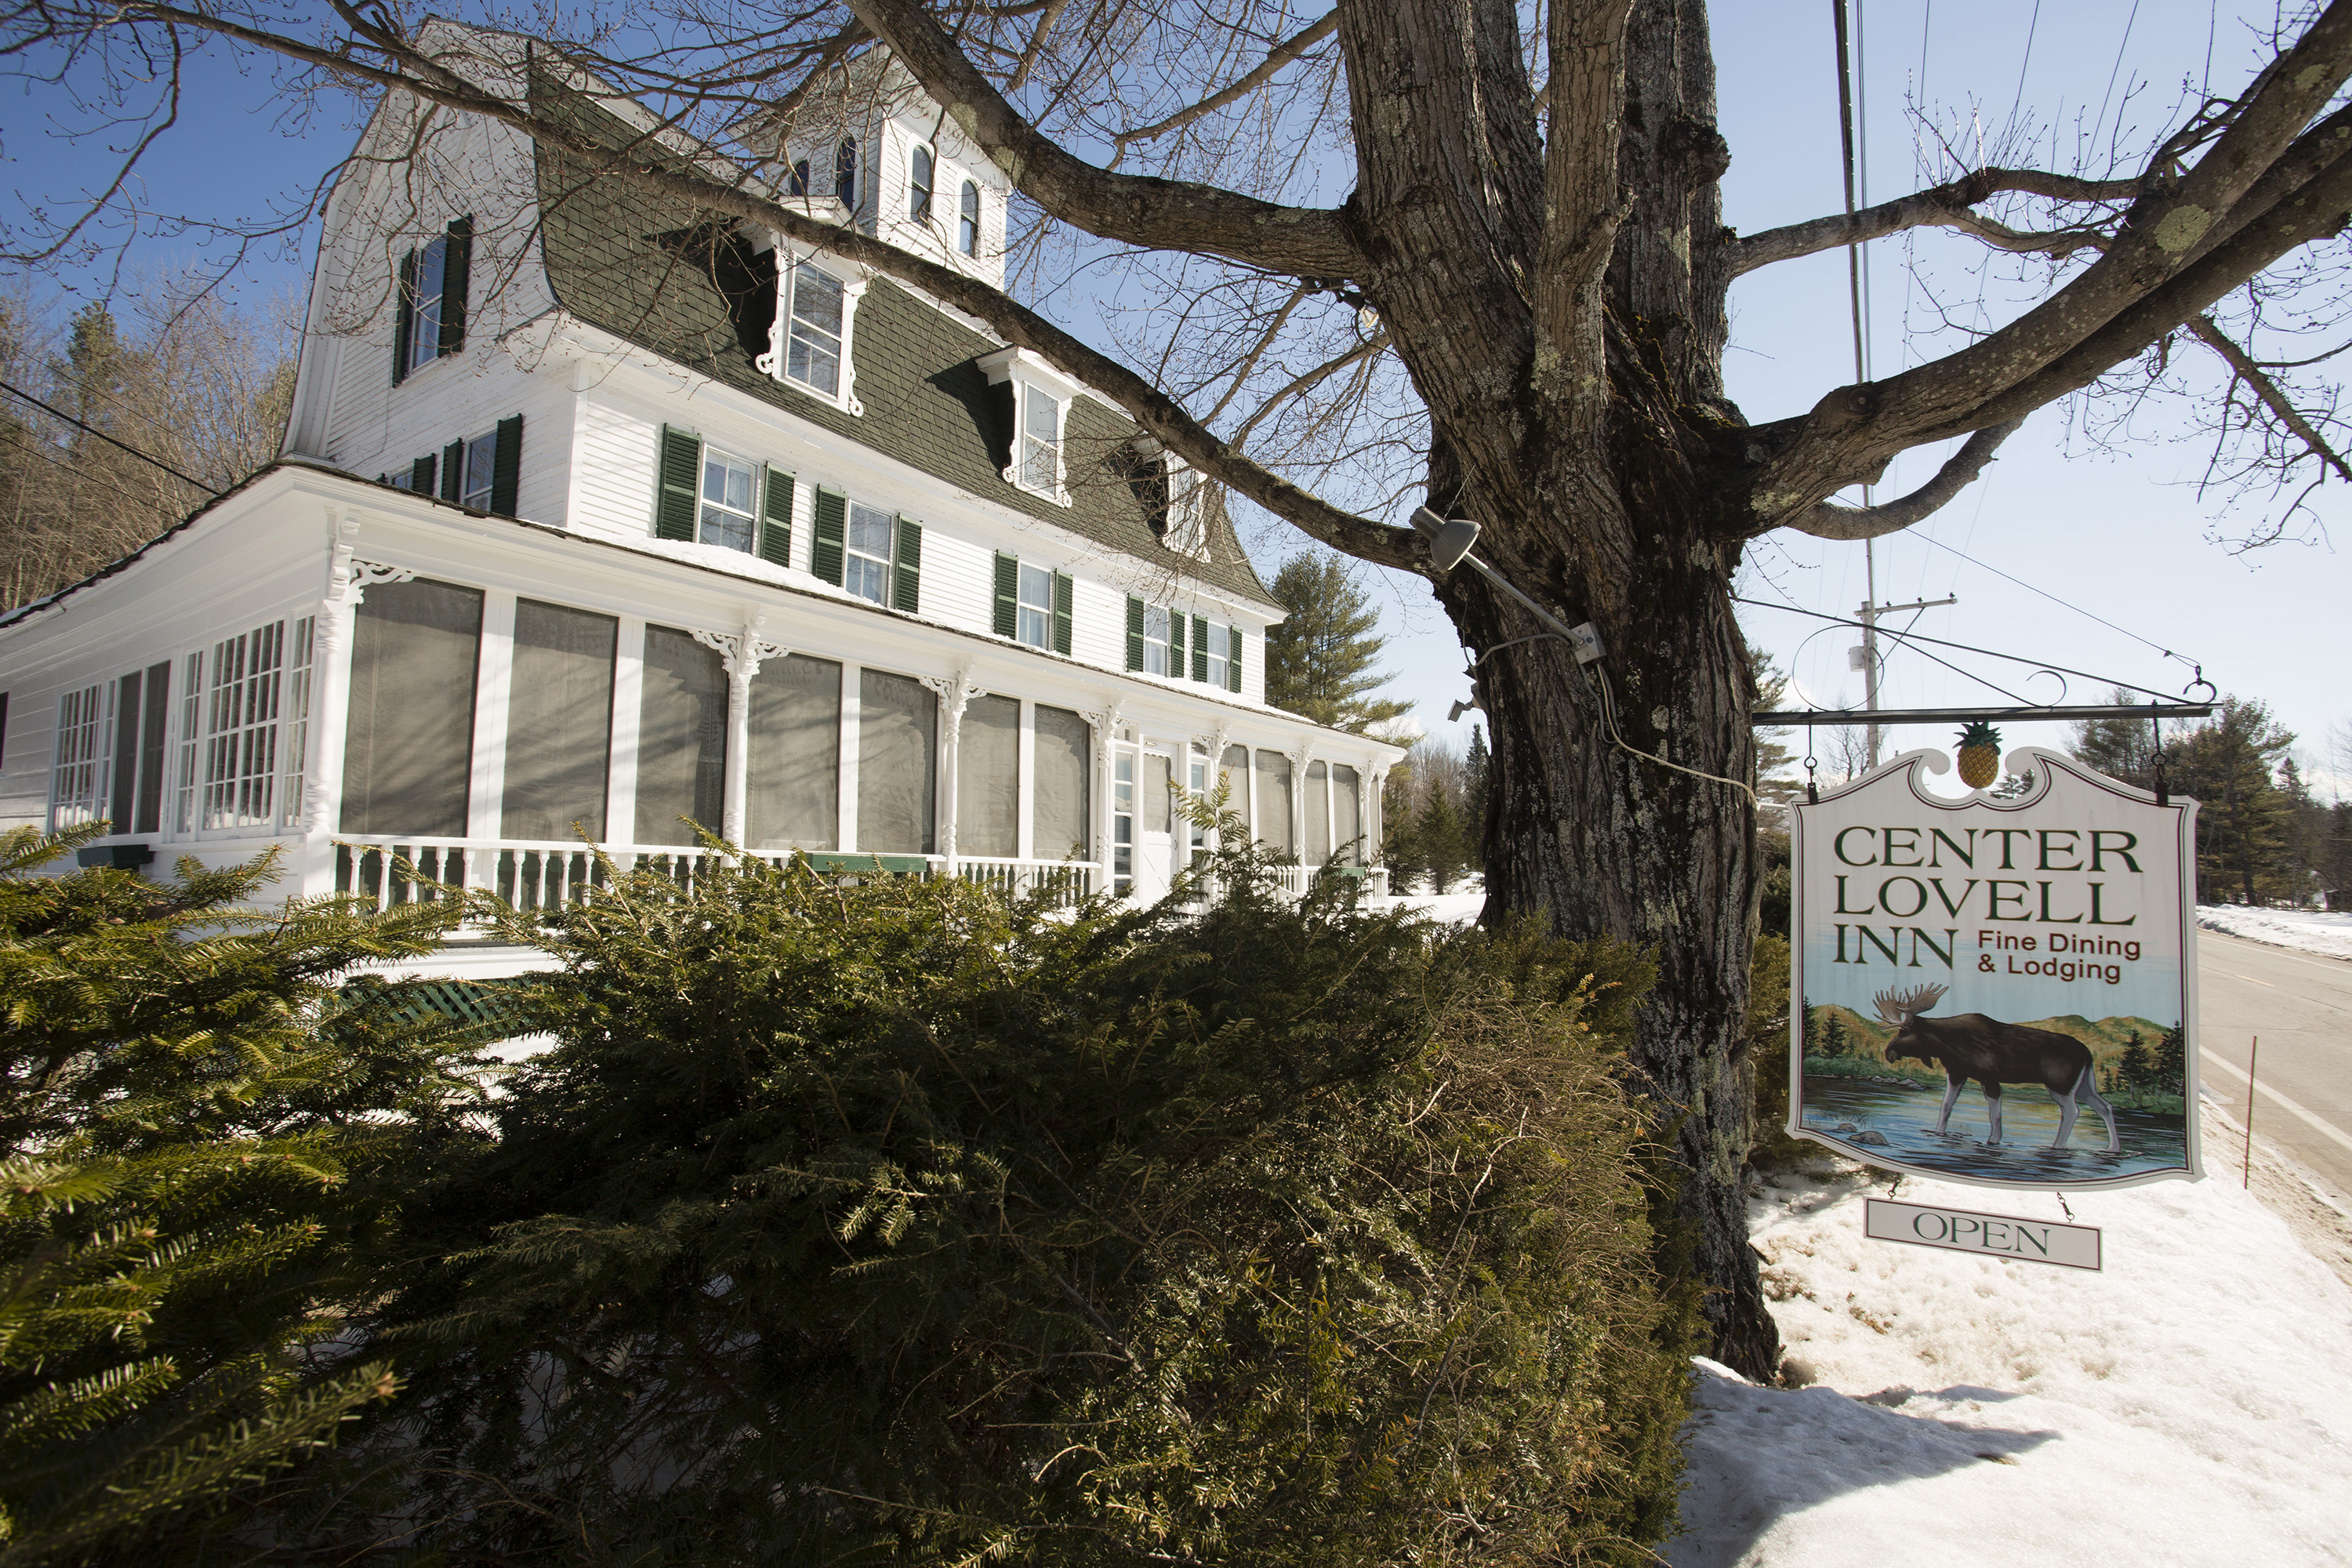 The Center Lovell Inns owner, Janice Sagan, is selling the inn, the same way she bought it 22 years ago, with an essay contest.